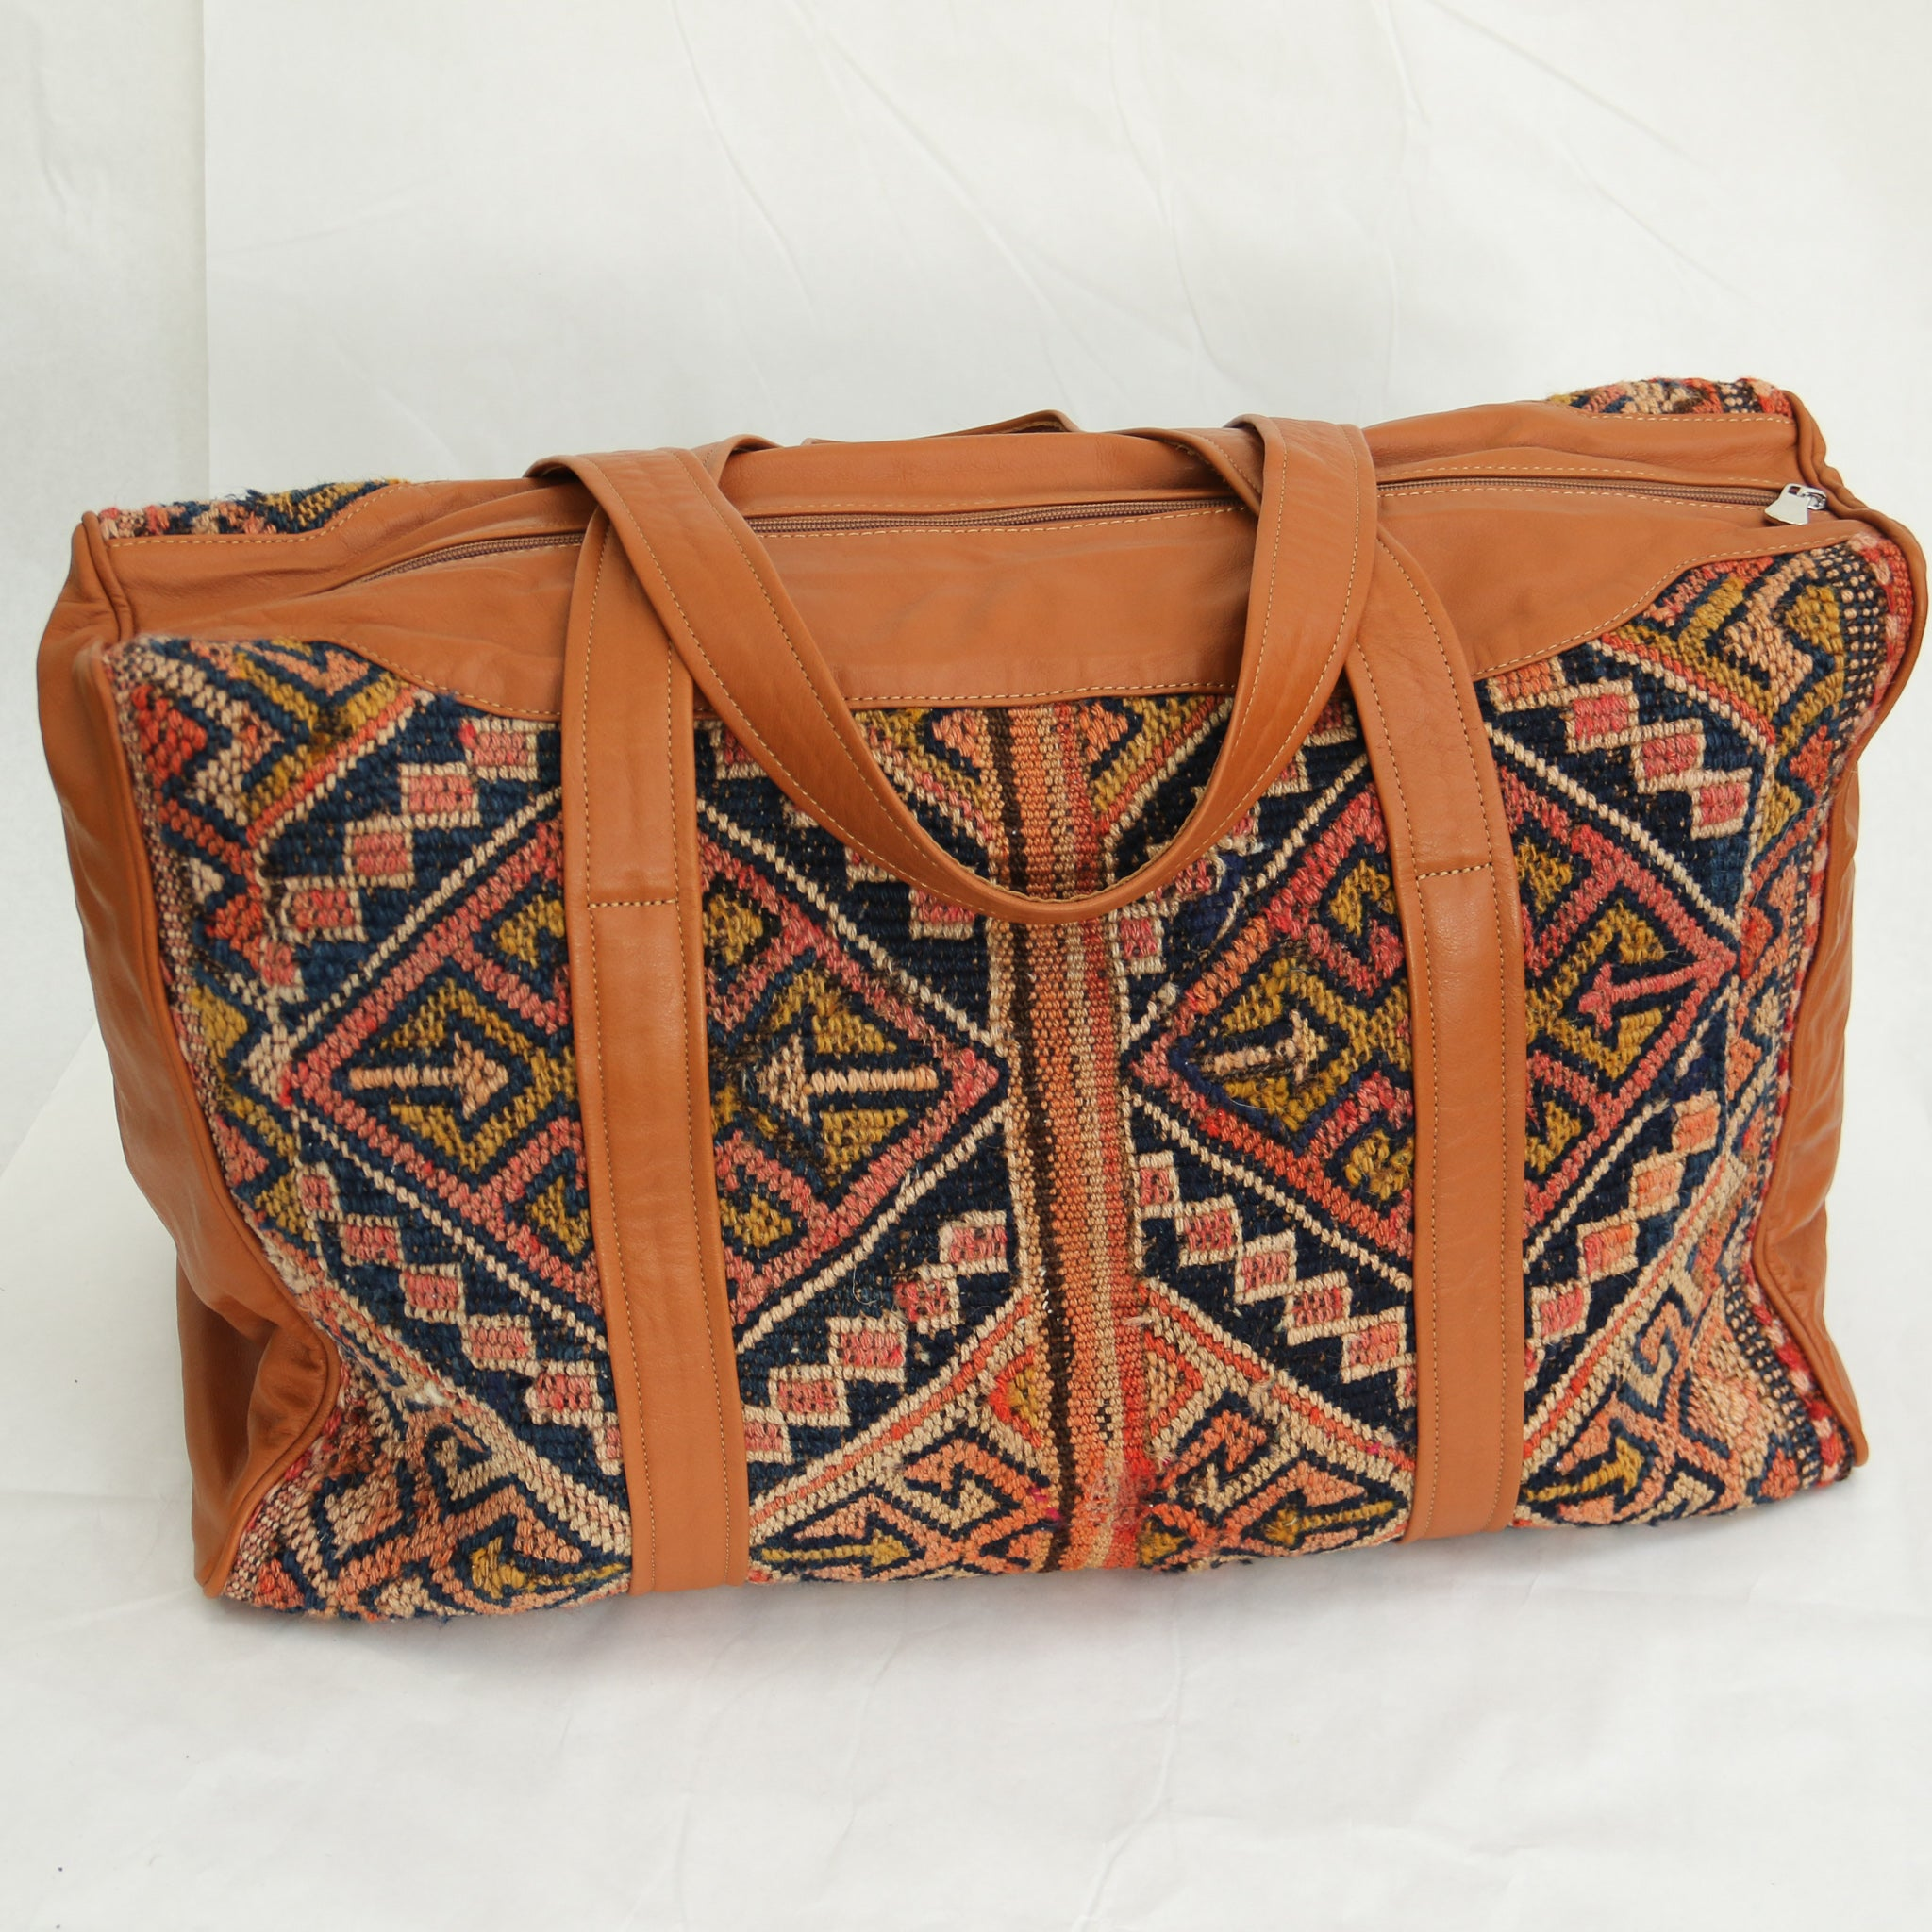 Kilim & Leather Overnight Bag #21